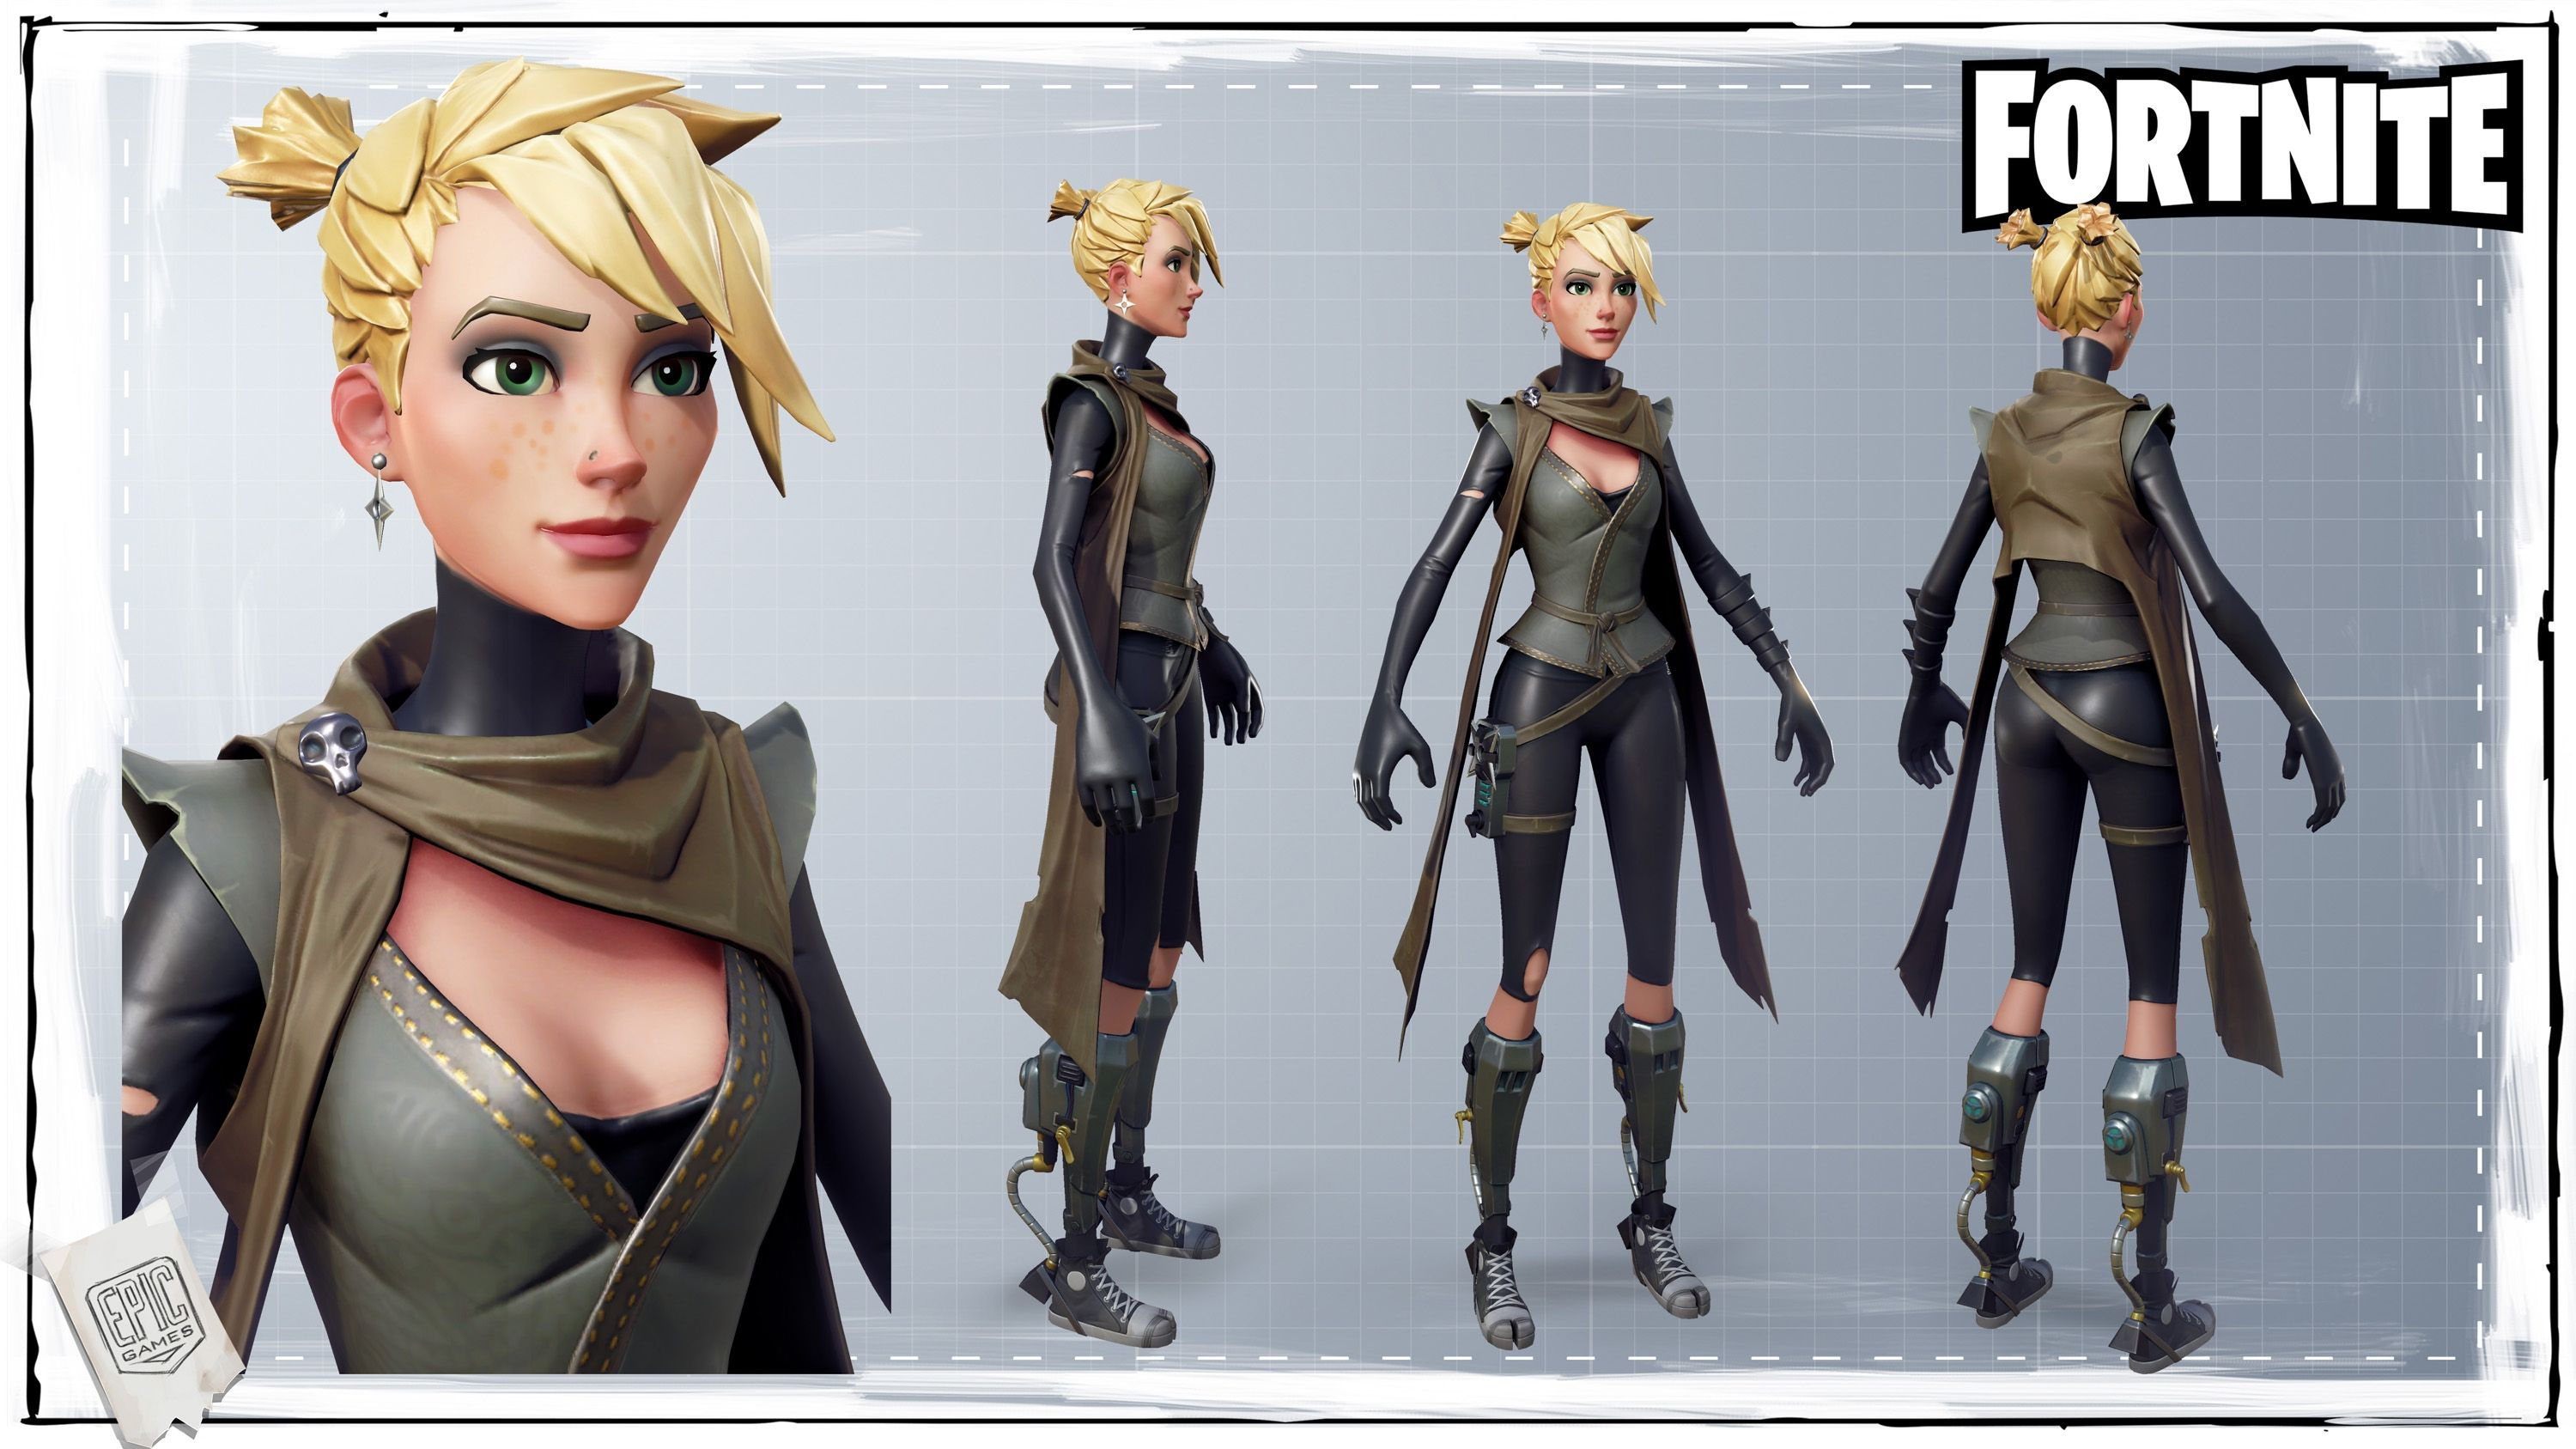 Fortnite Character Art Dump \u2014 polycount in 2019